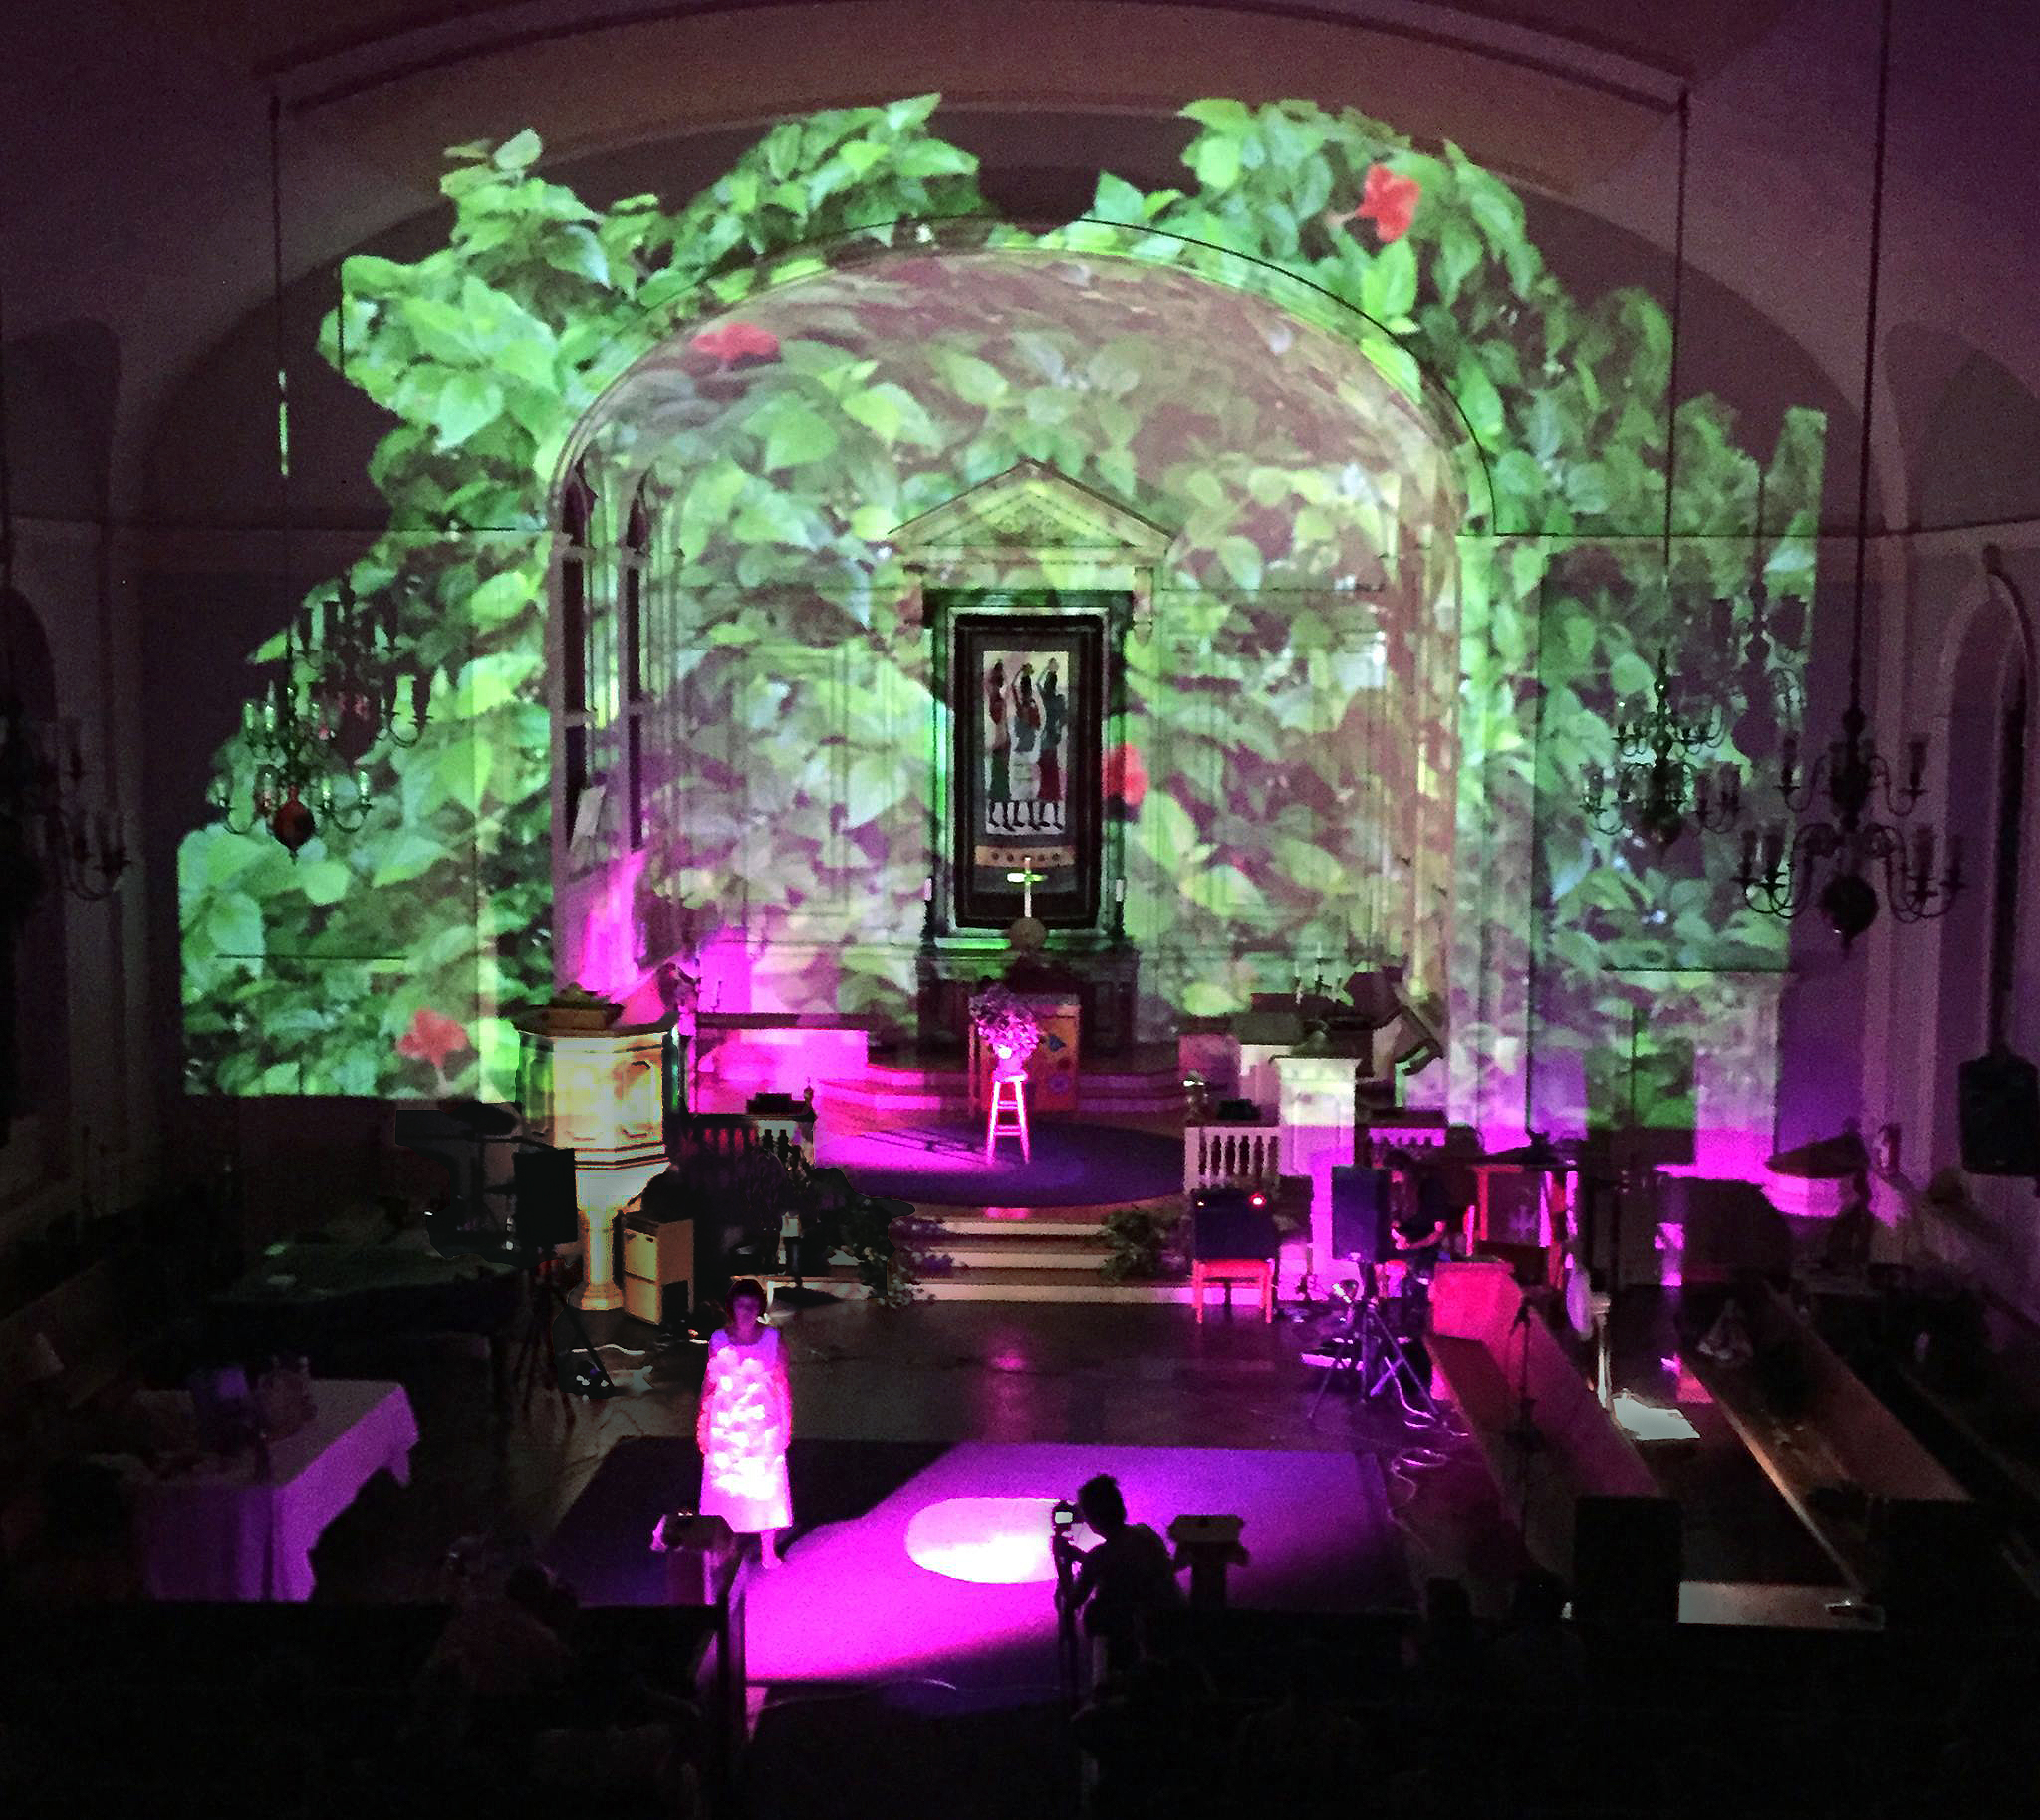 Dreamscape 16 at Hope Chapel Church in JP, Boston, MA August 11, 2018 Music and song deconstruction by Piotr Sapiezynski  Photos by Daniel Corral